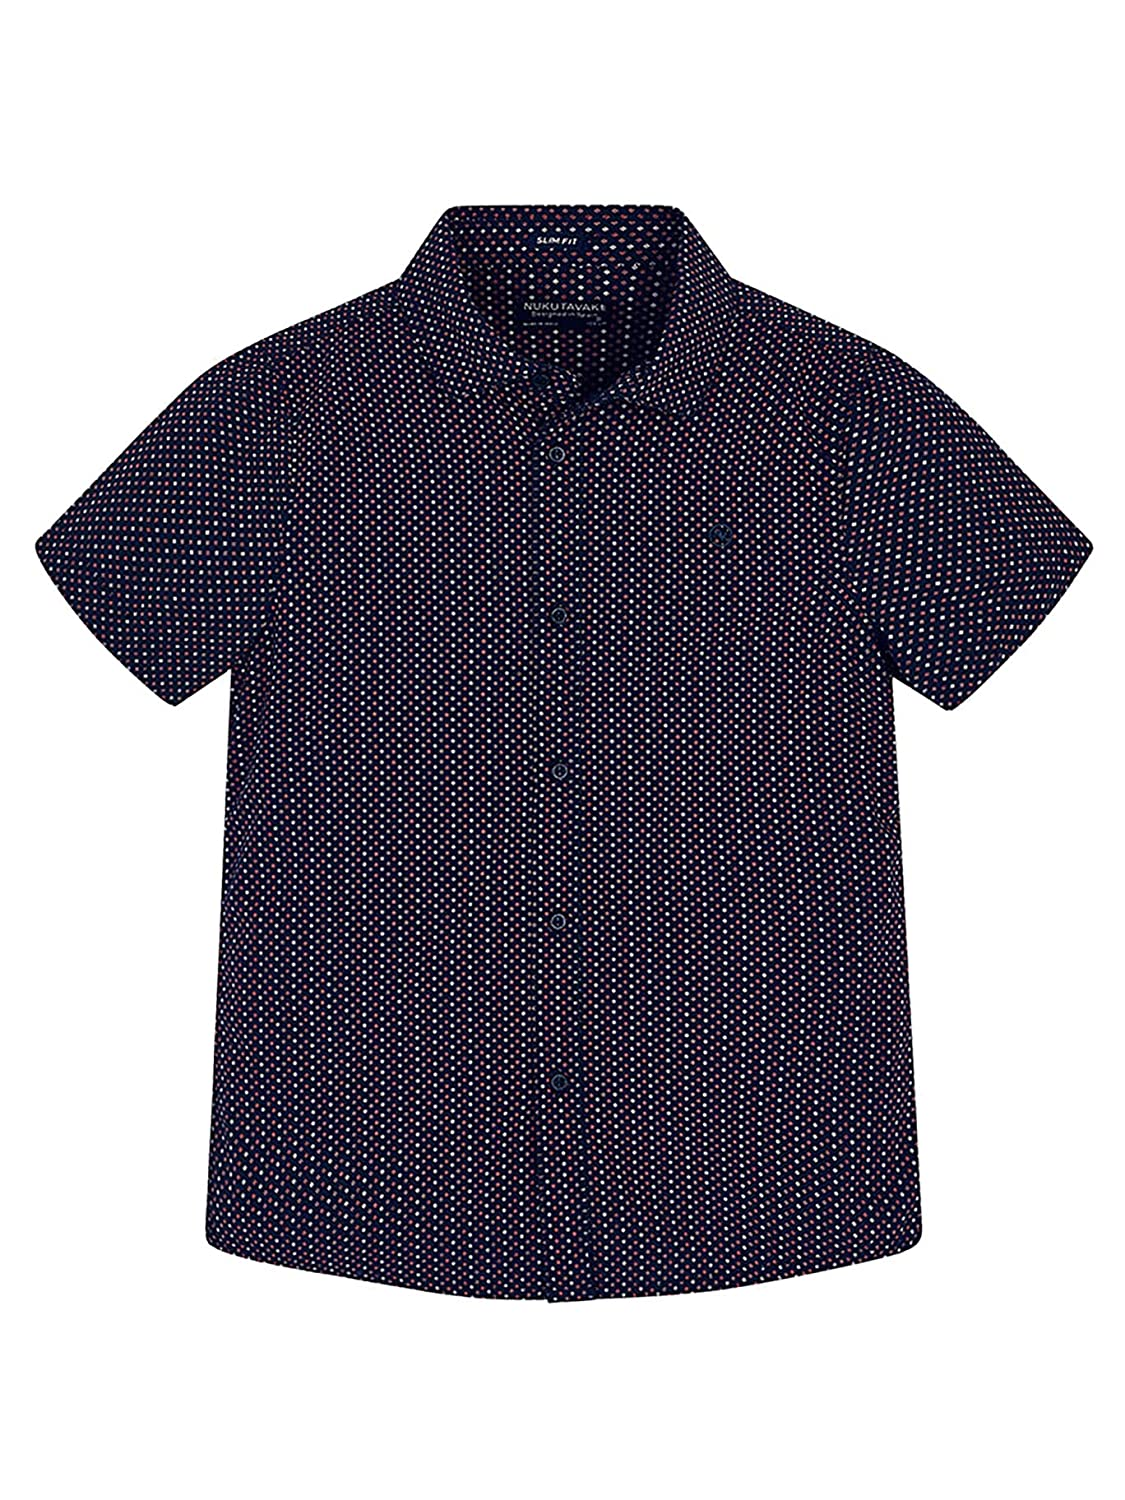 S//s Shirt for Boys Mayoral Navy 6126